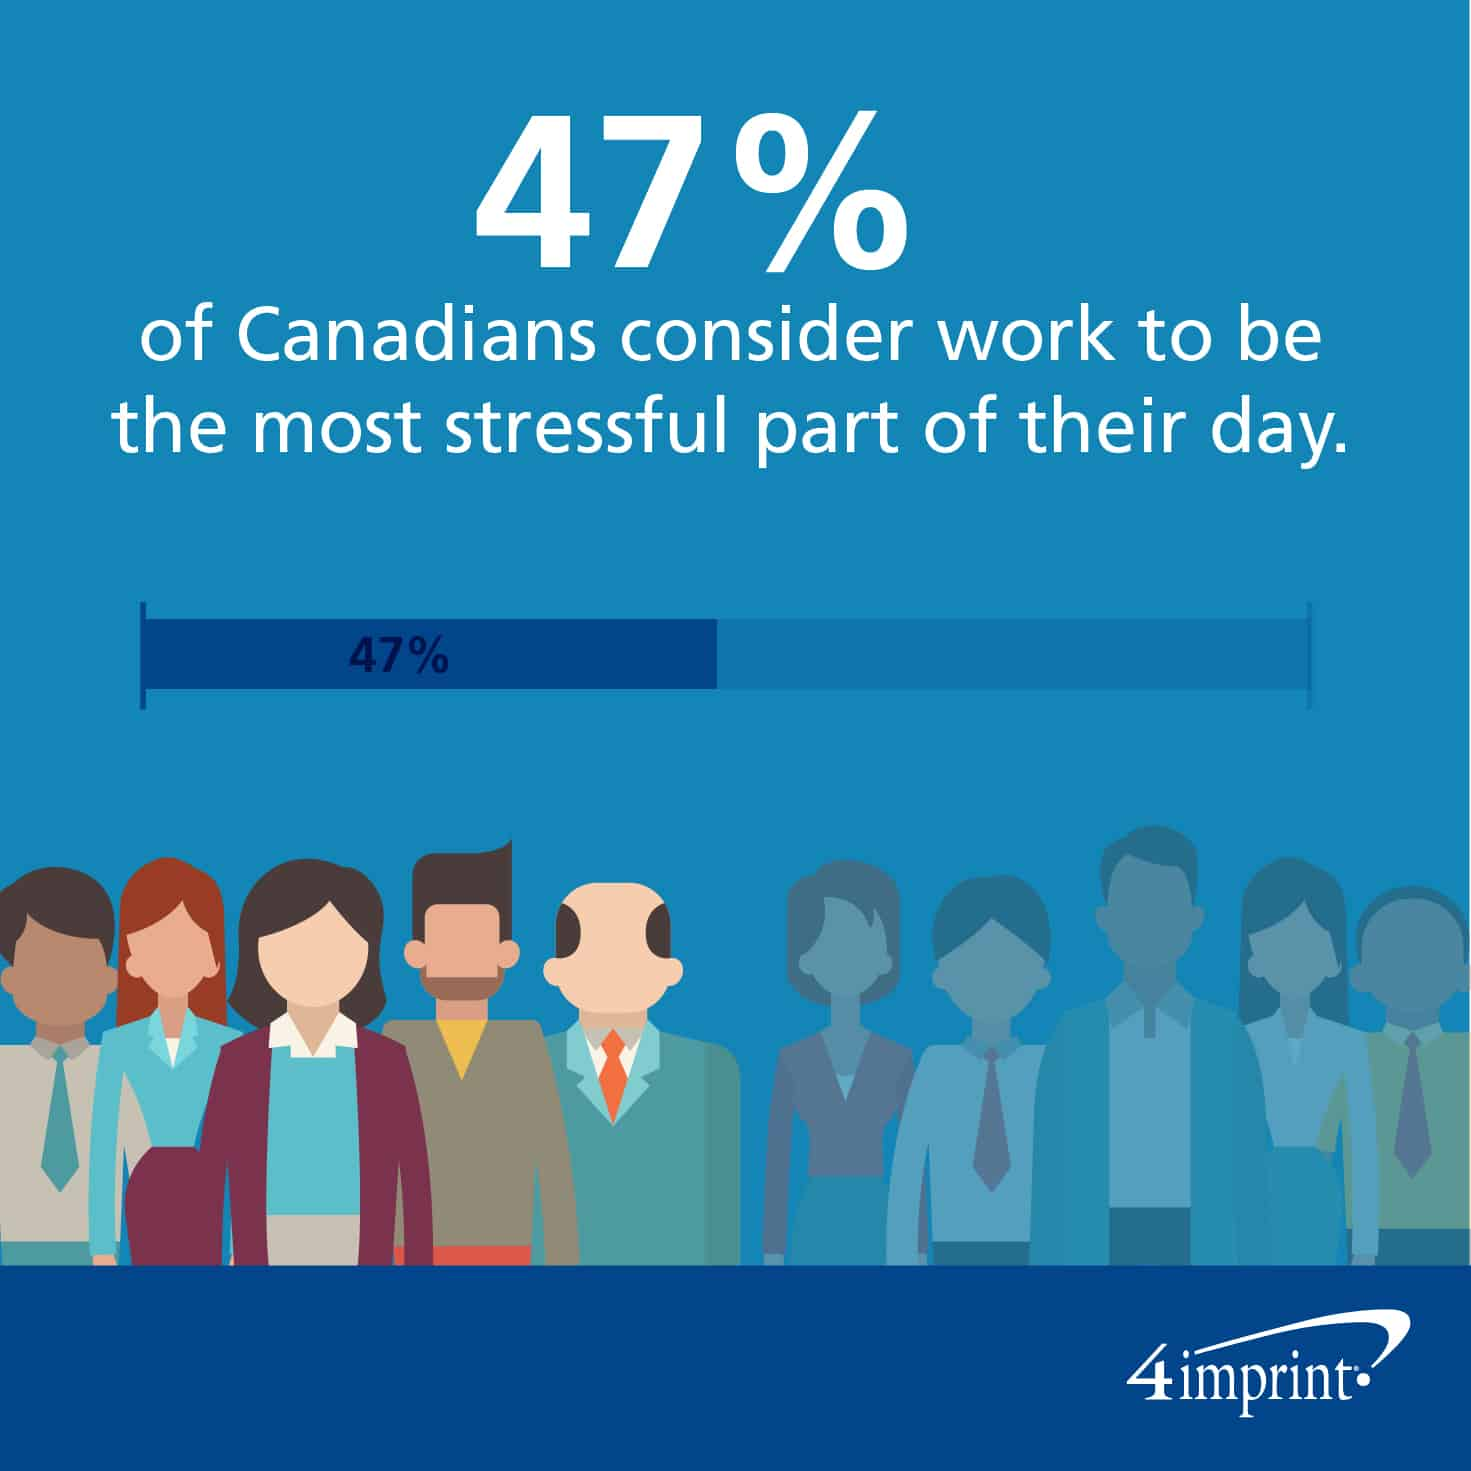 47% of Canadians consider work to be the most stressful part of their day.